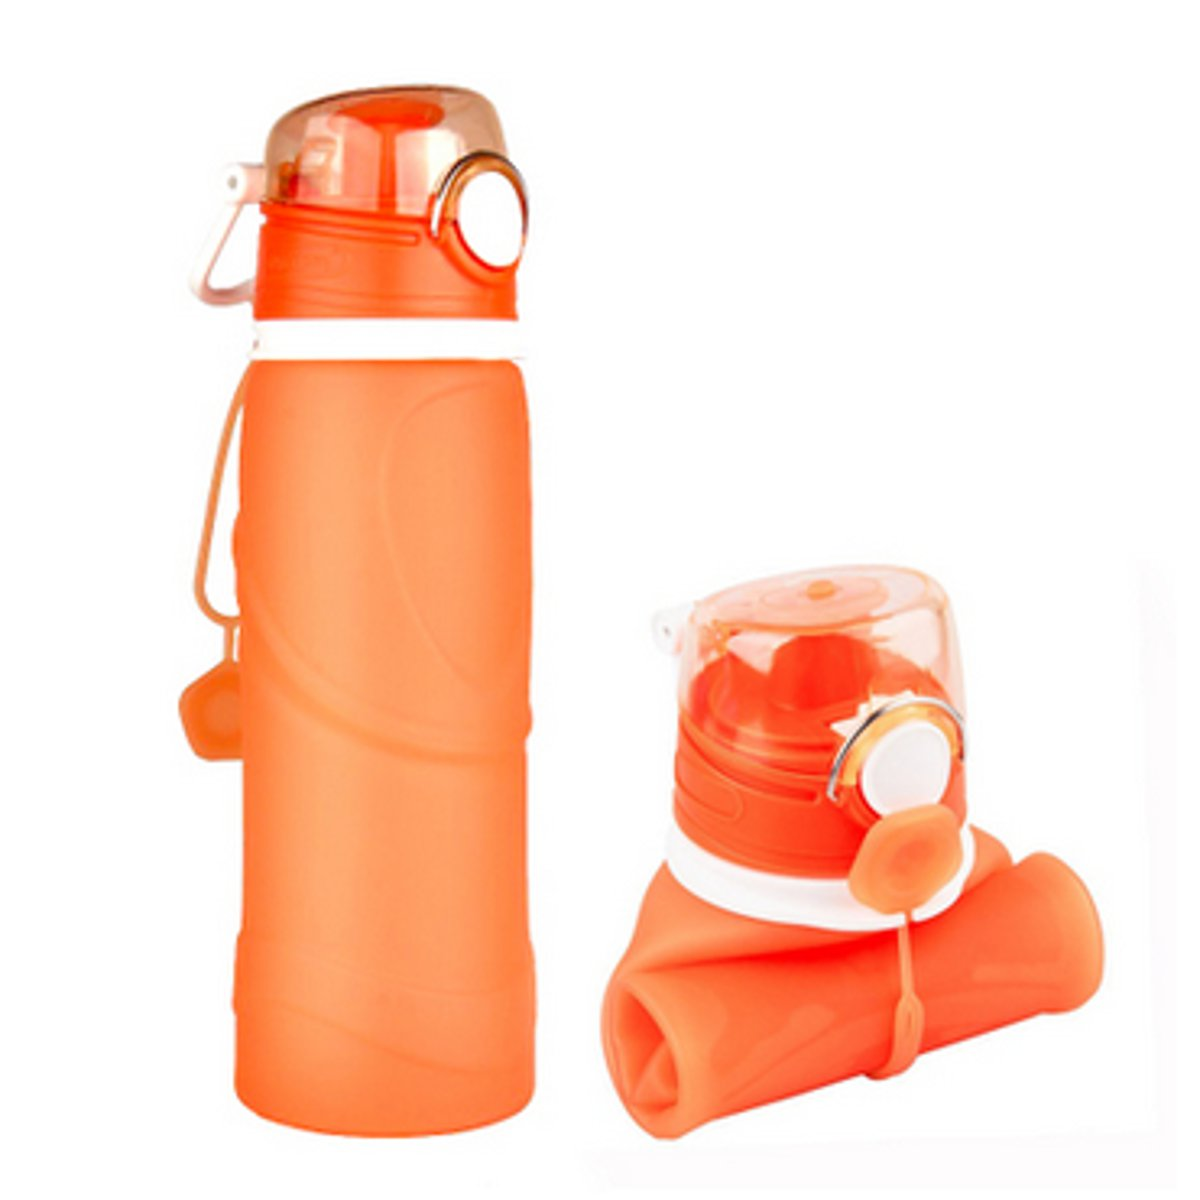 750ml Portable Collapsible Silicone Travel Foldable Water Bottle Outdoor Cycling